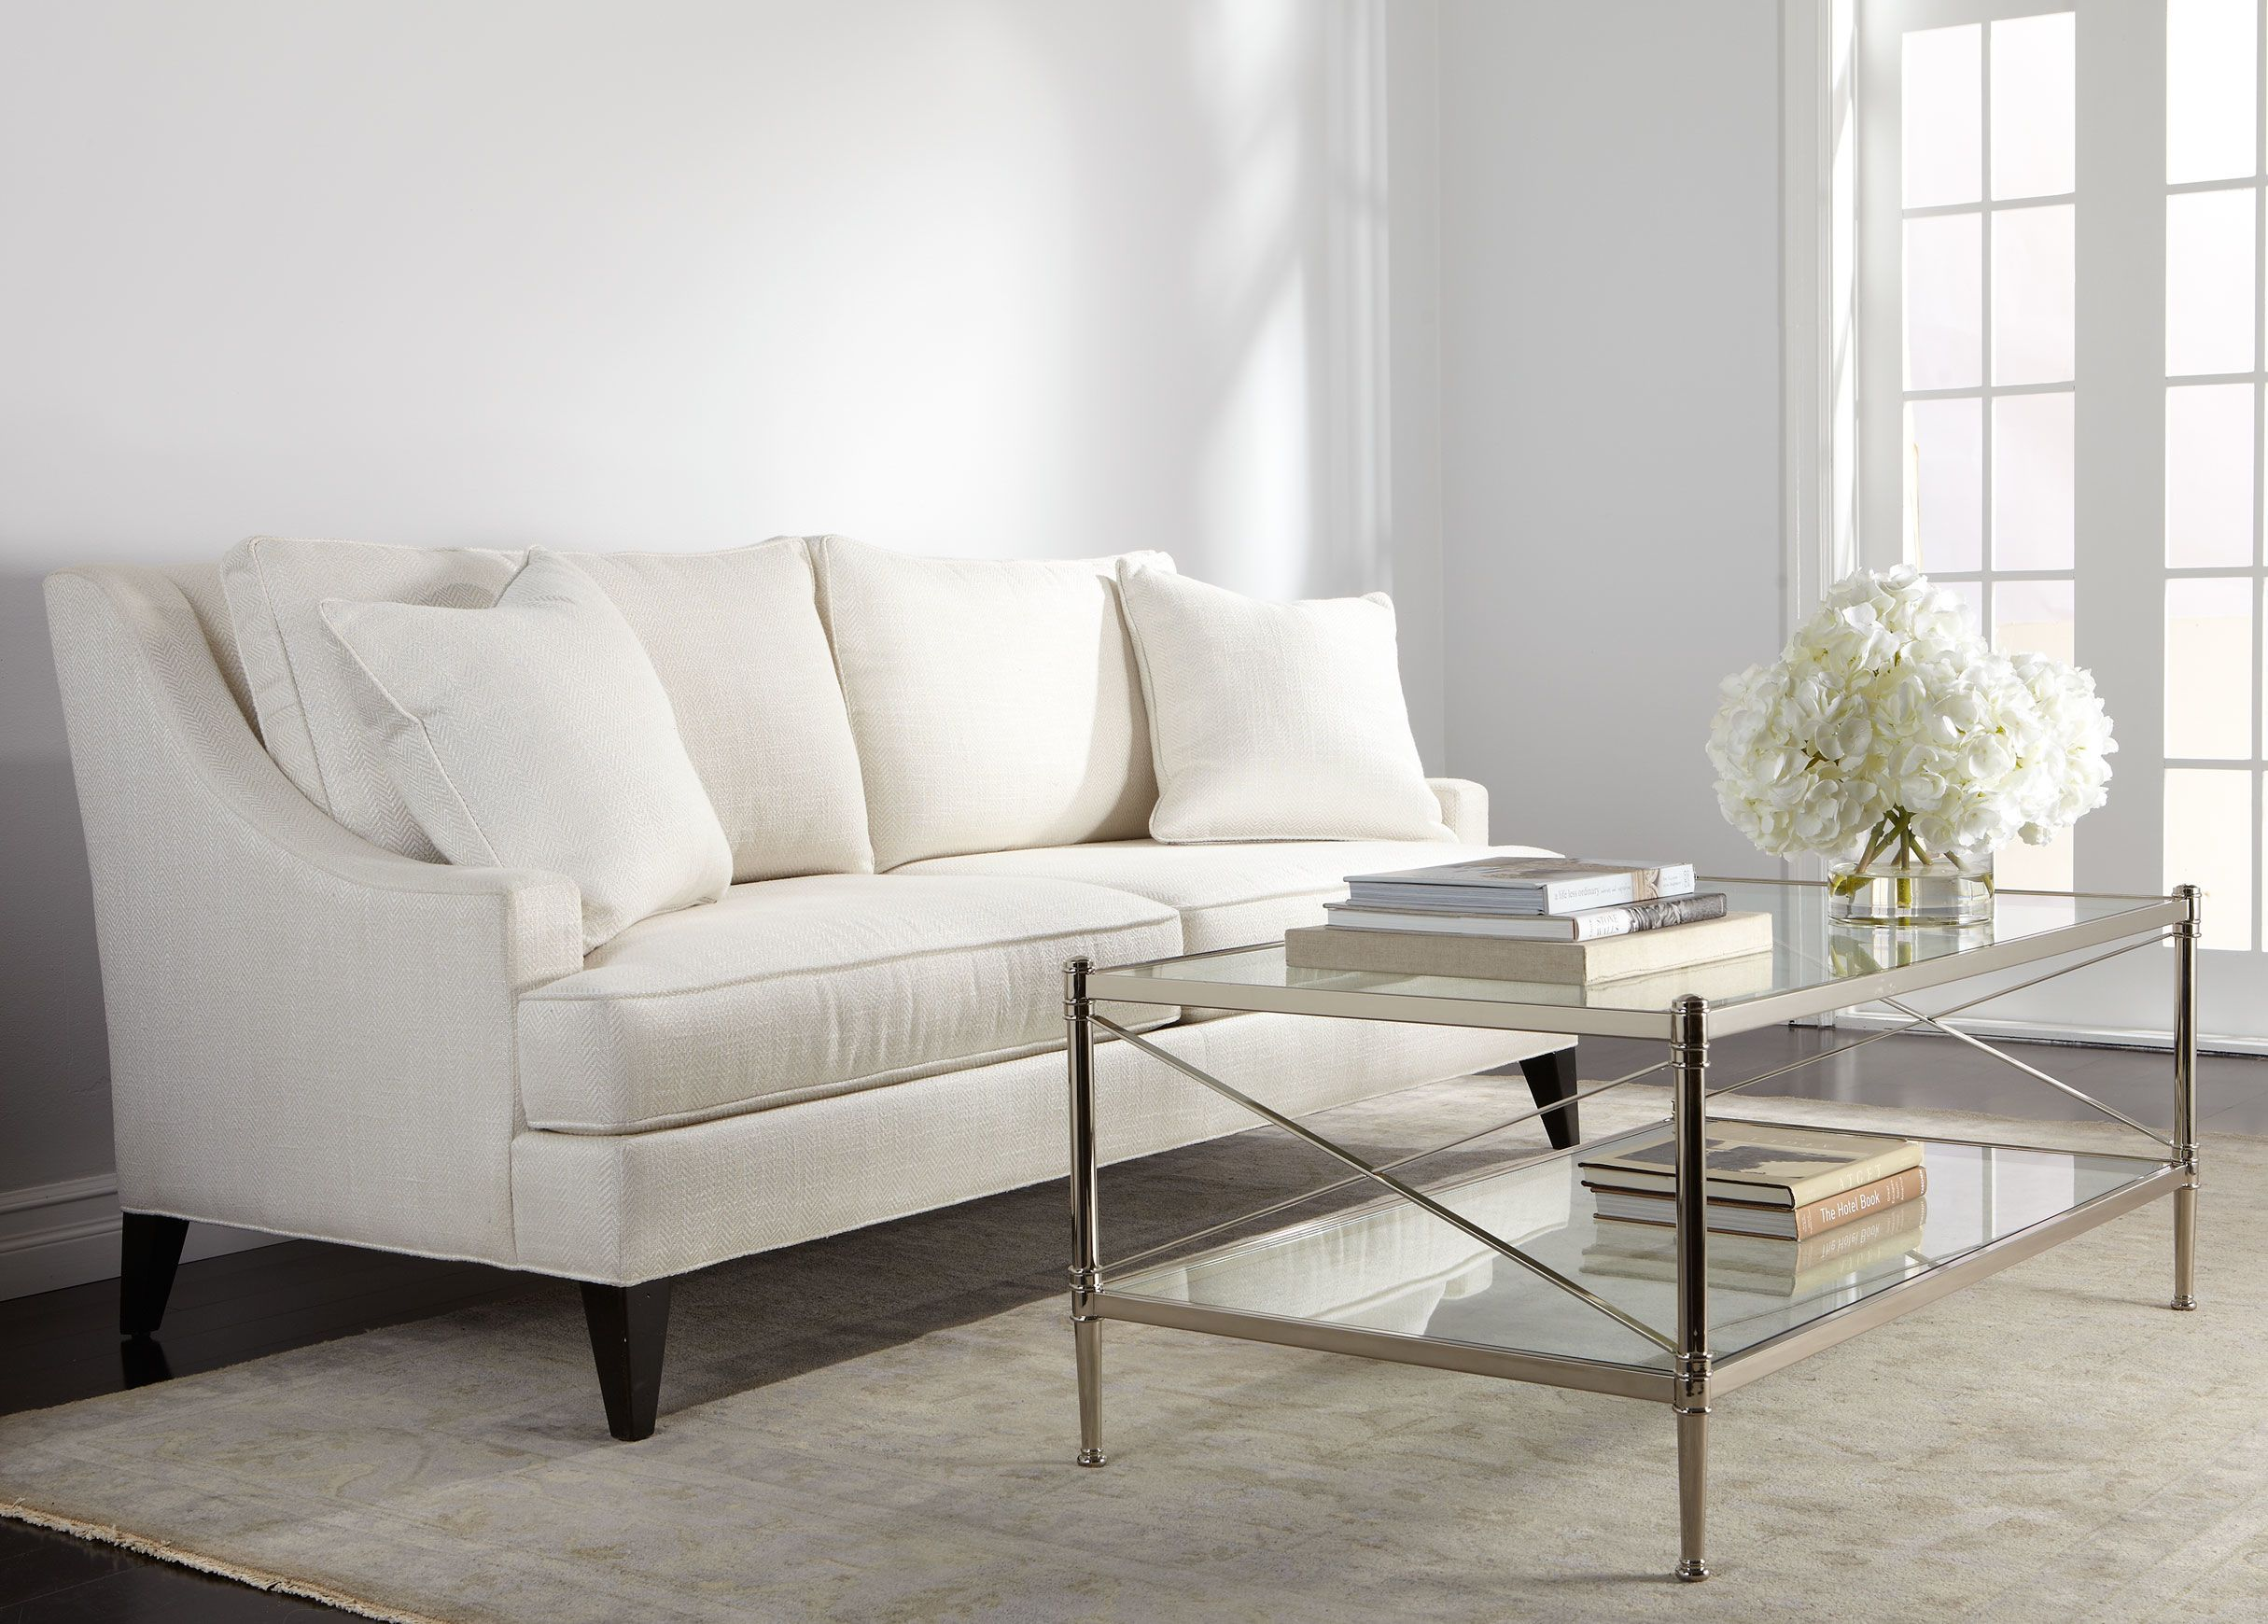 Jocelyn Coffee Table  Ethan Allen With Emerson Sofa  Barlow Beauteous Formal Dining Room Furniture Ethan Allen 2018